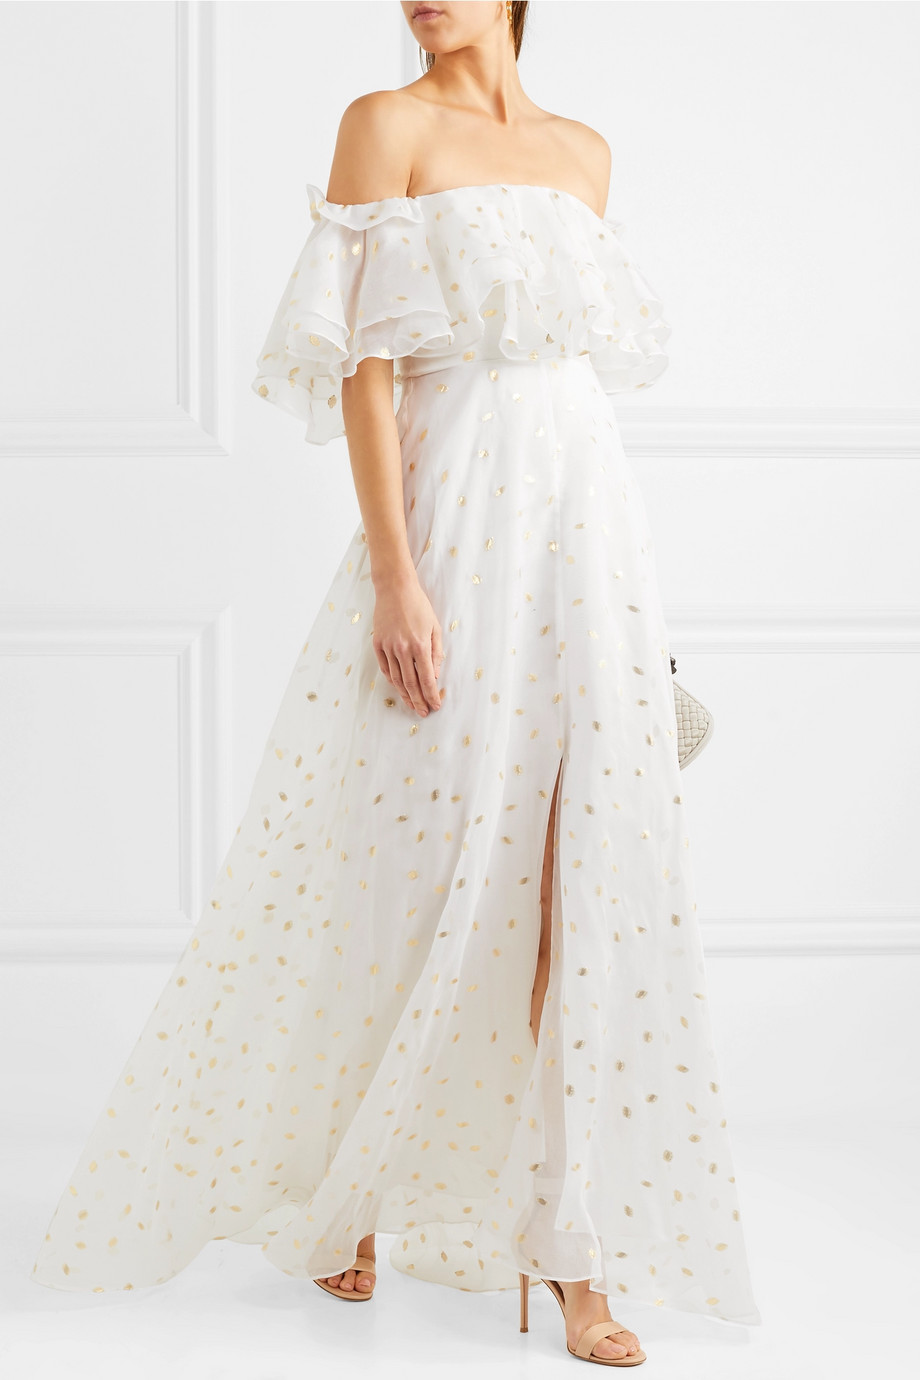 TEMPERLEY LONDON Off-the-shoulder metallic fil coupé organza gown